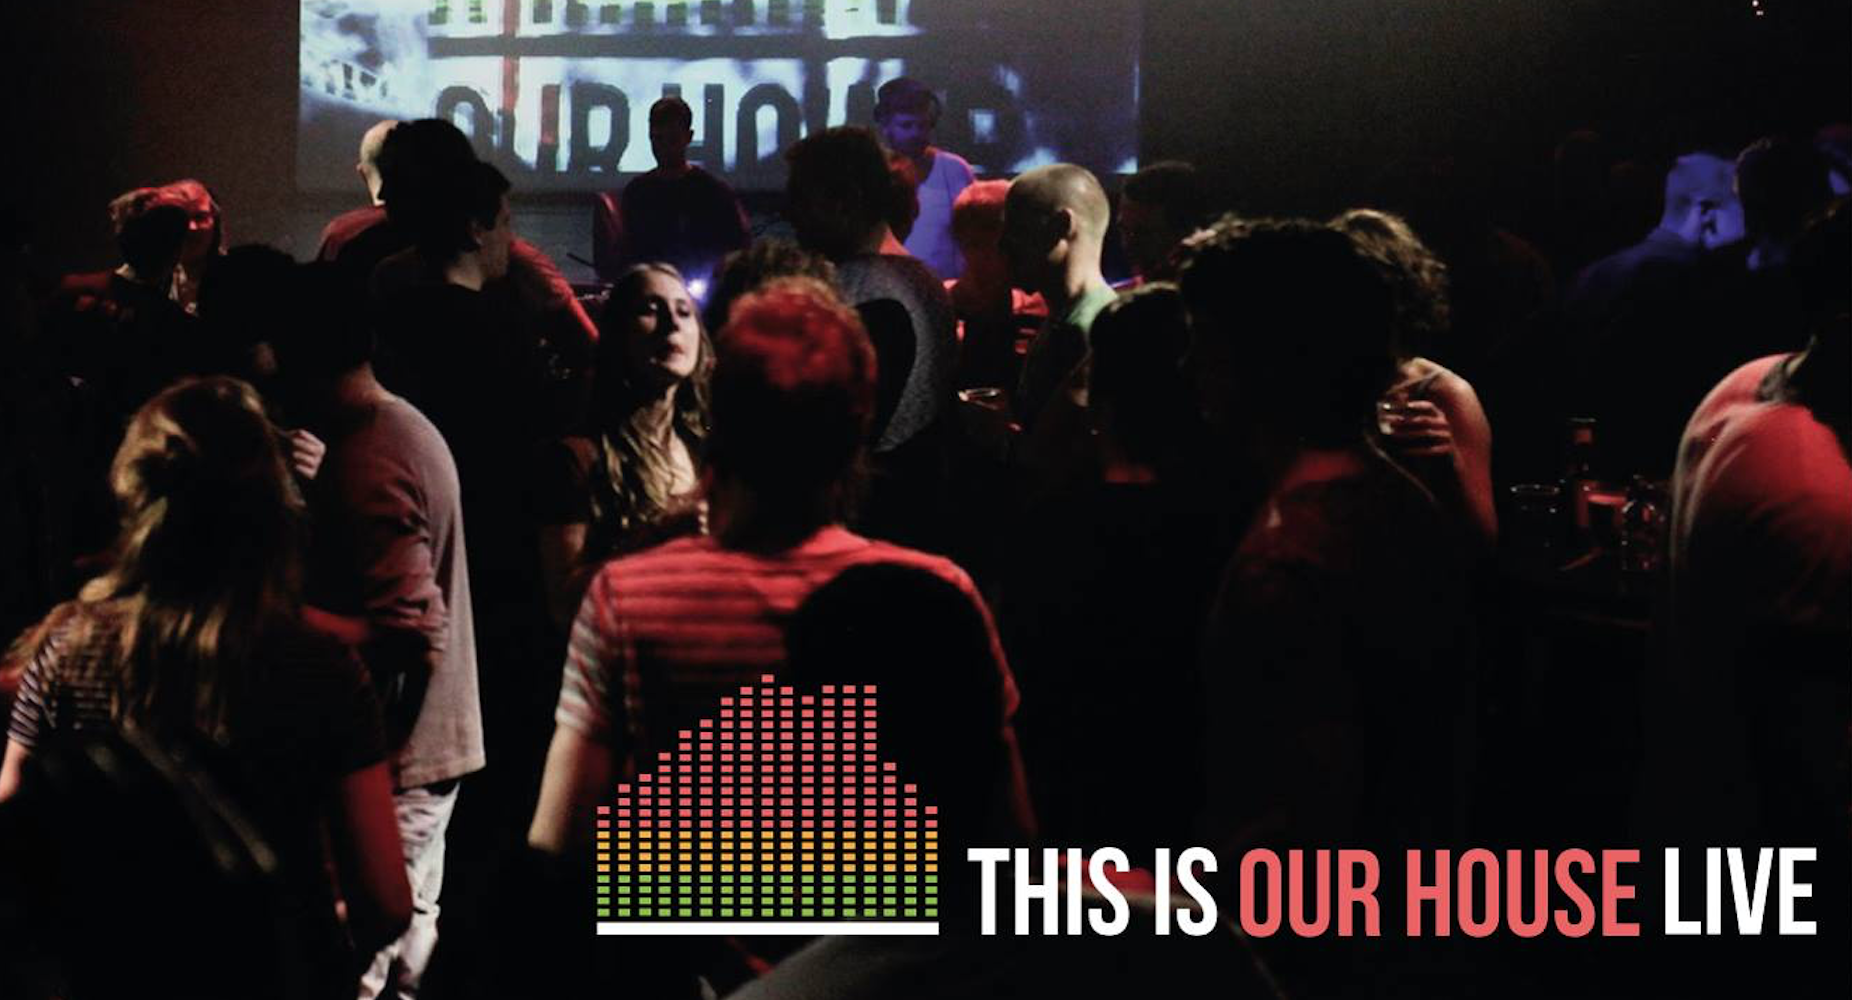 This Is Our House Live